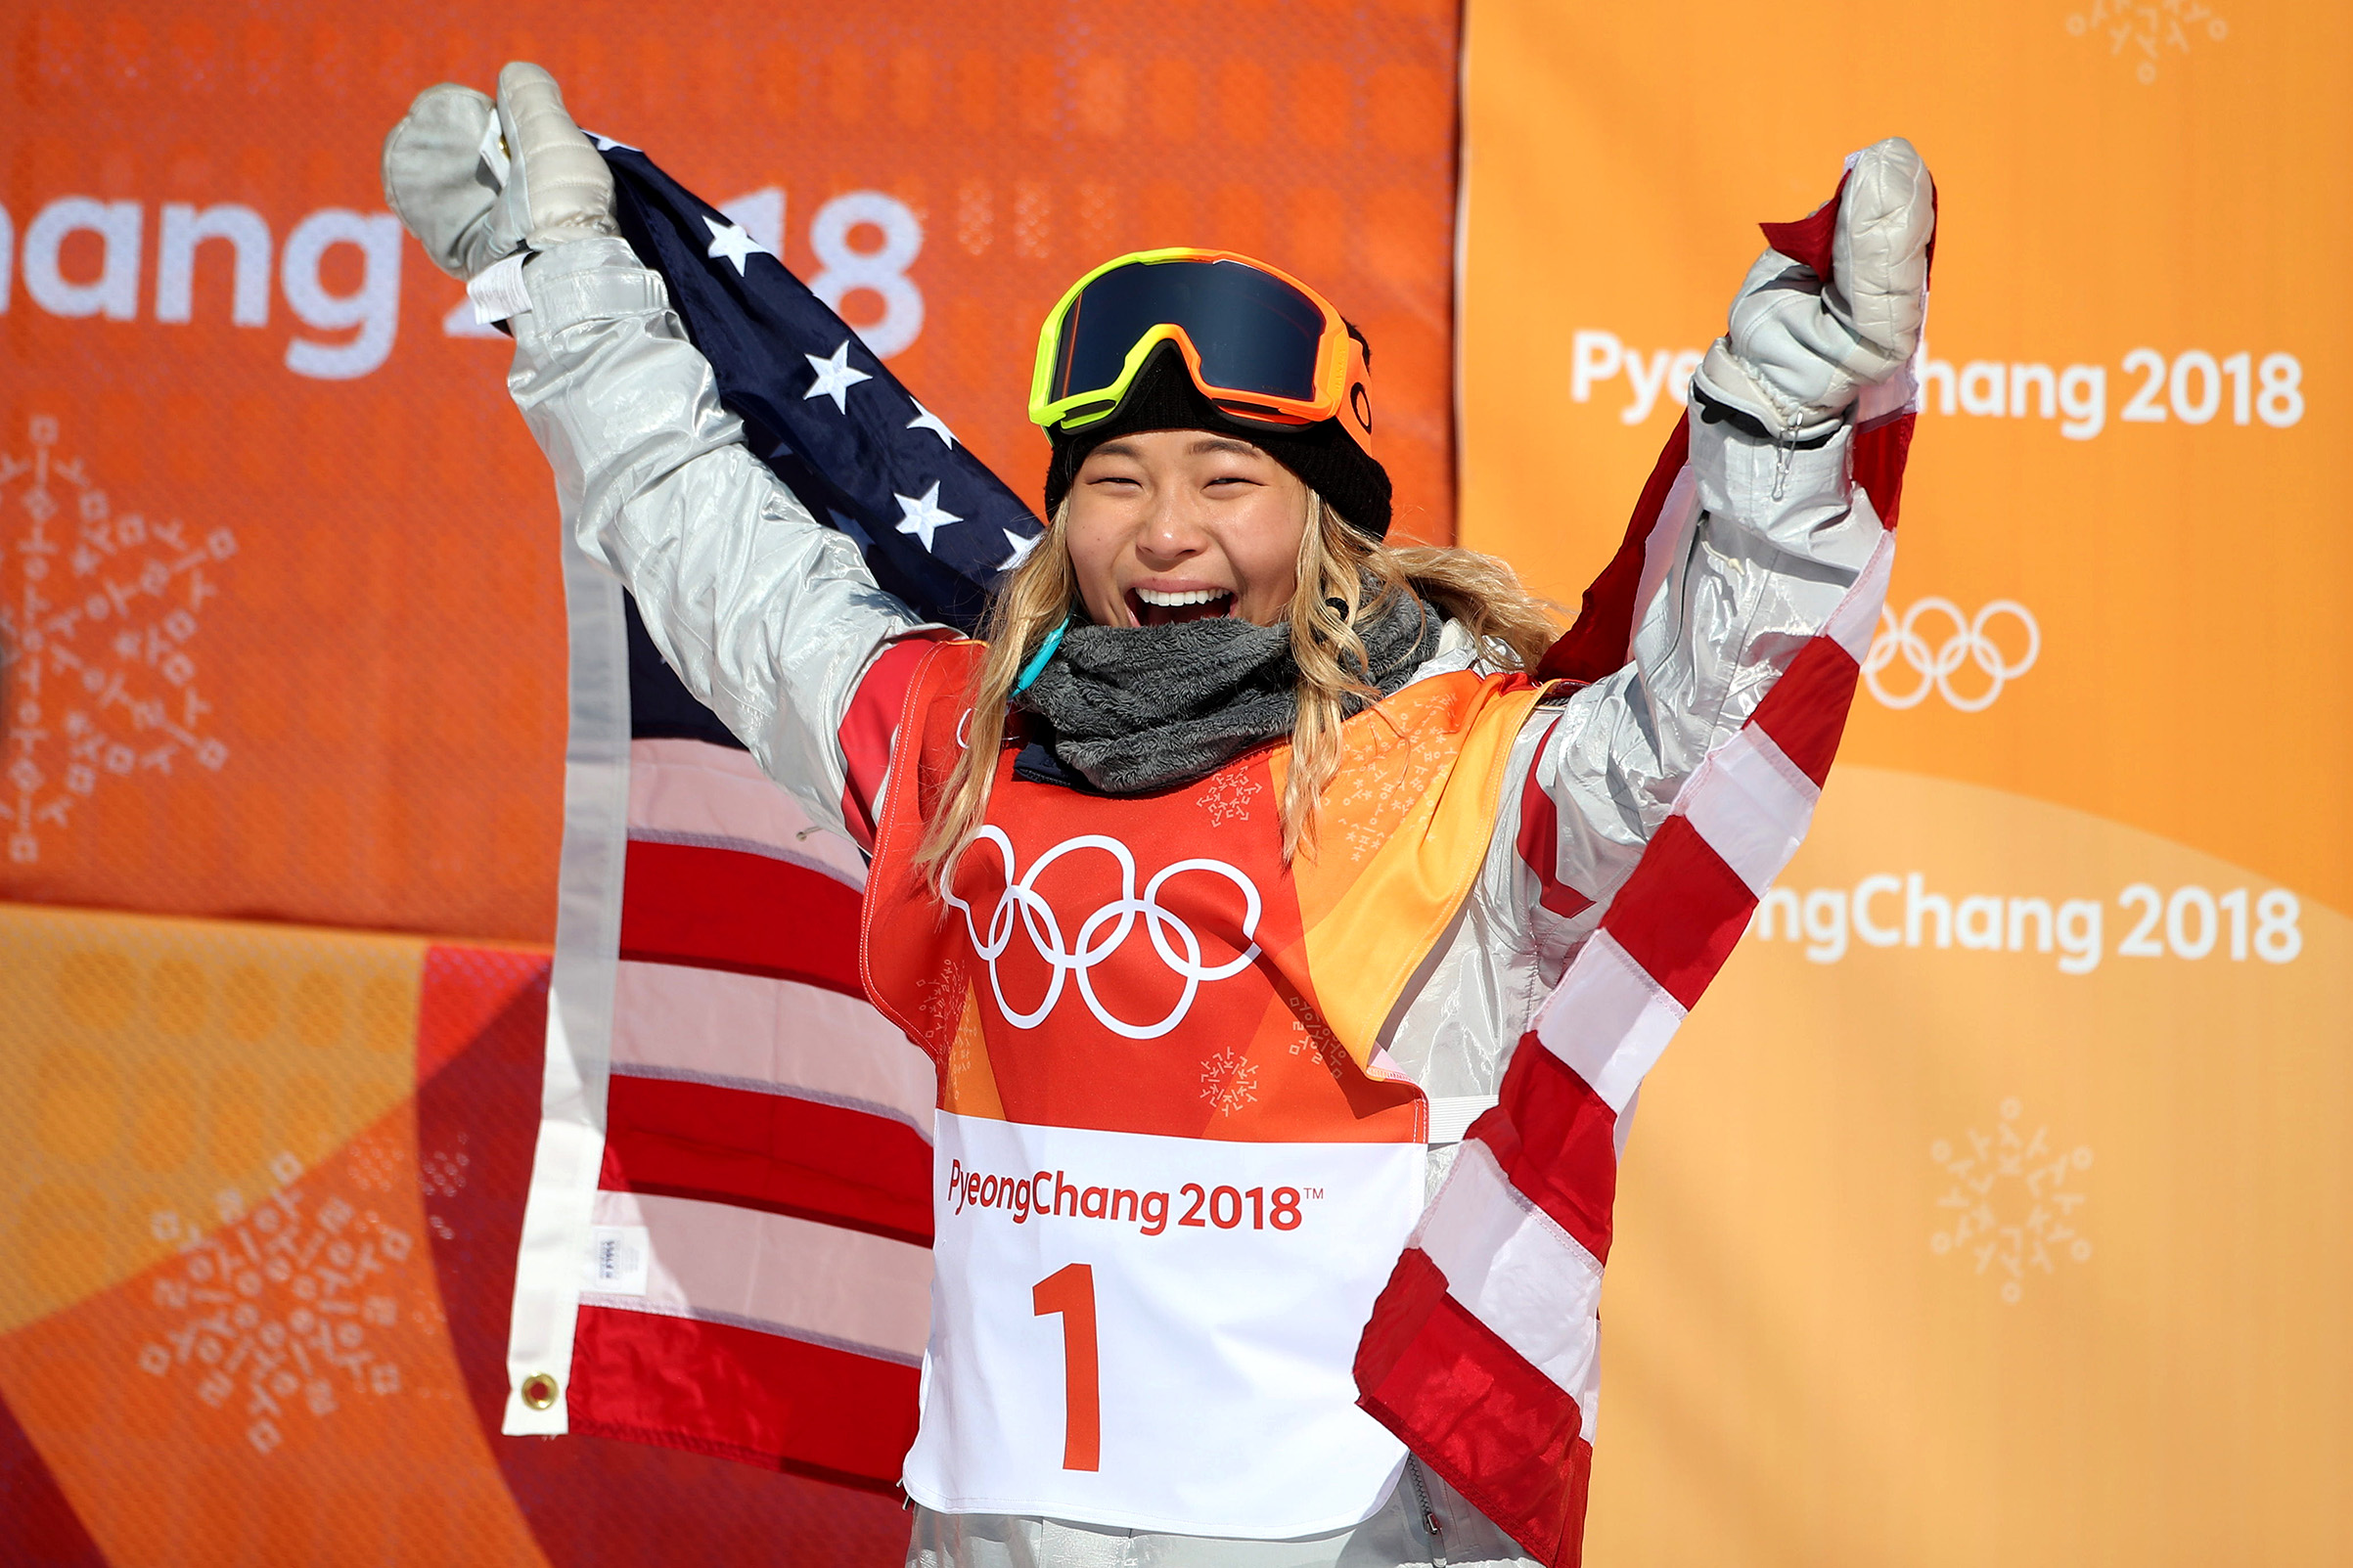 Gold medalist Chloe Kim of the United States celebrates her gold medal win during the Snowboard Ladies' Halfpipe competition on Feb. 13, 2018.